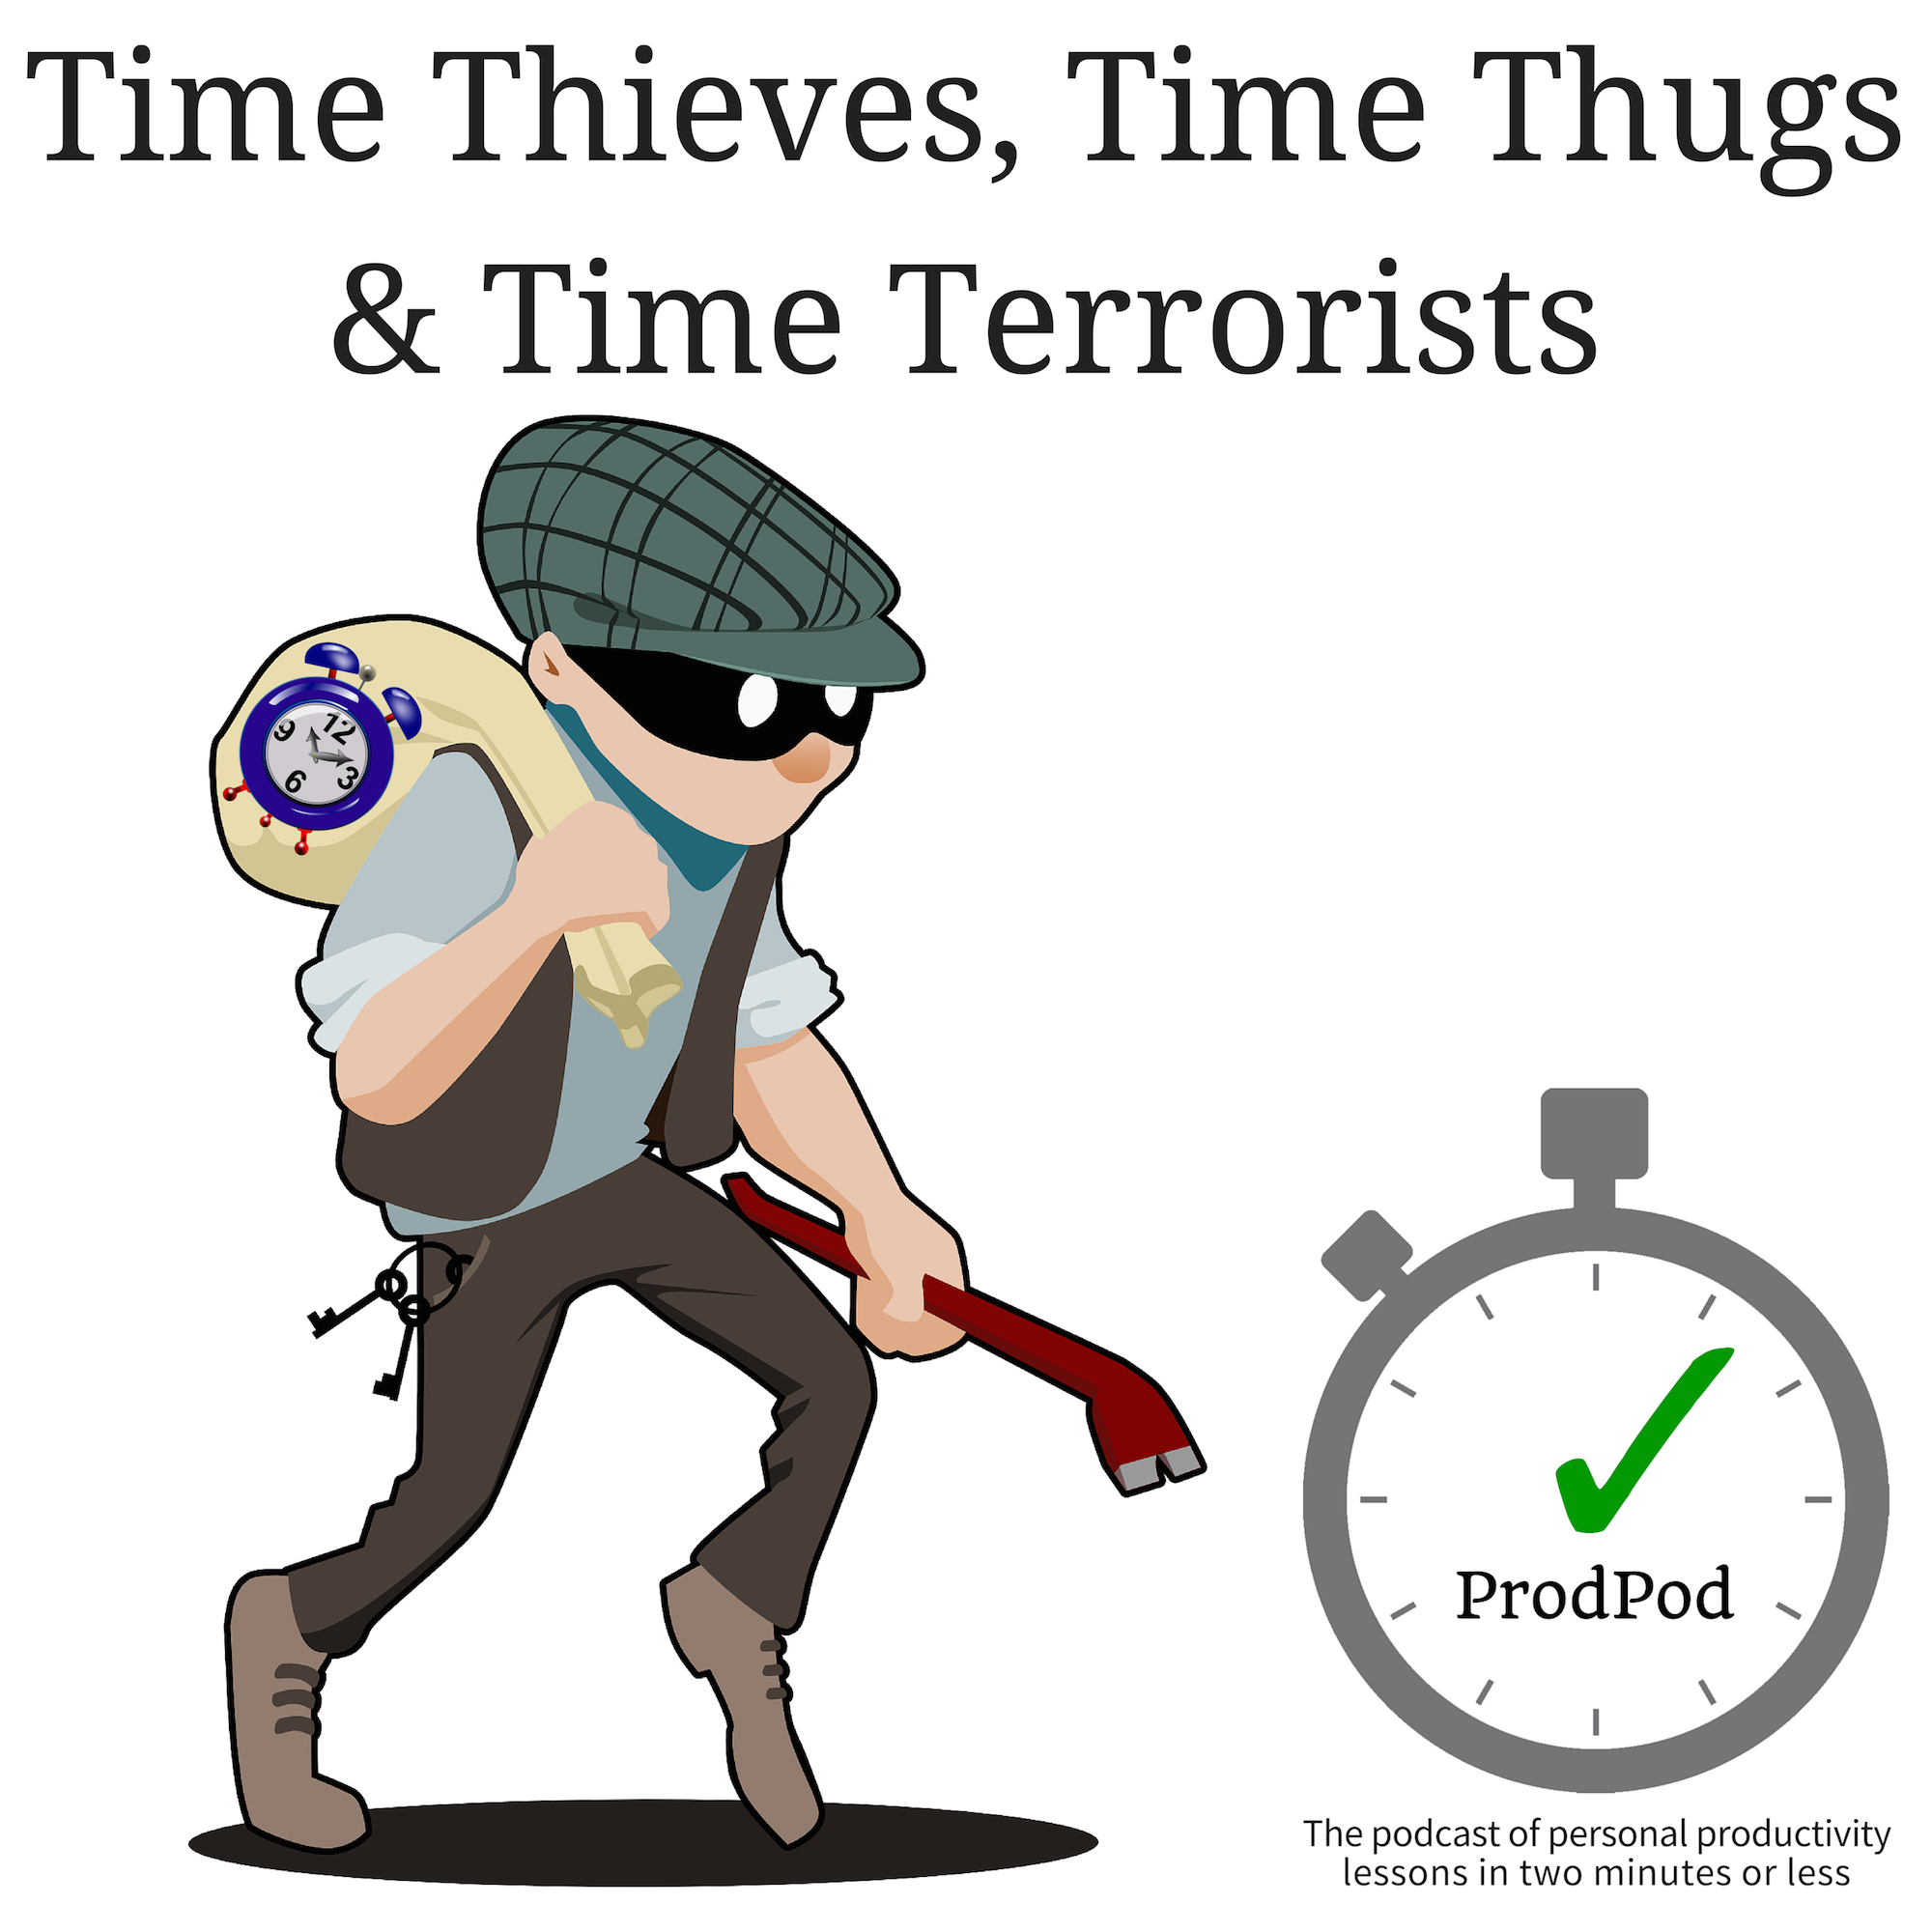 ProdPod: Episode 96–Time Thieves, Thugs and Terrorists - Who They Are So You Can Identify Them Efficiently